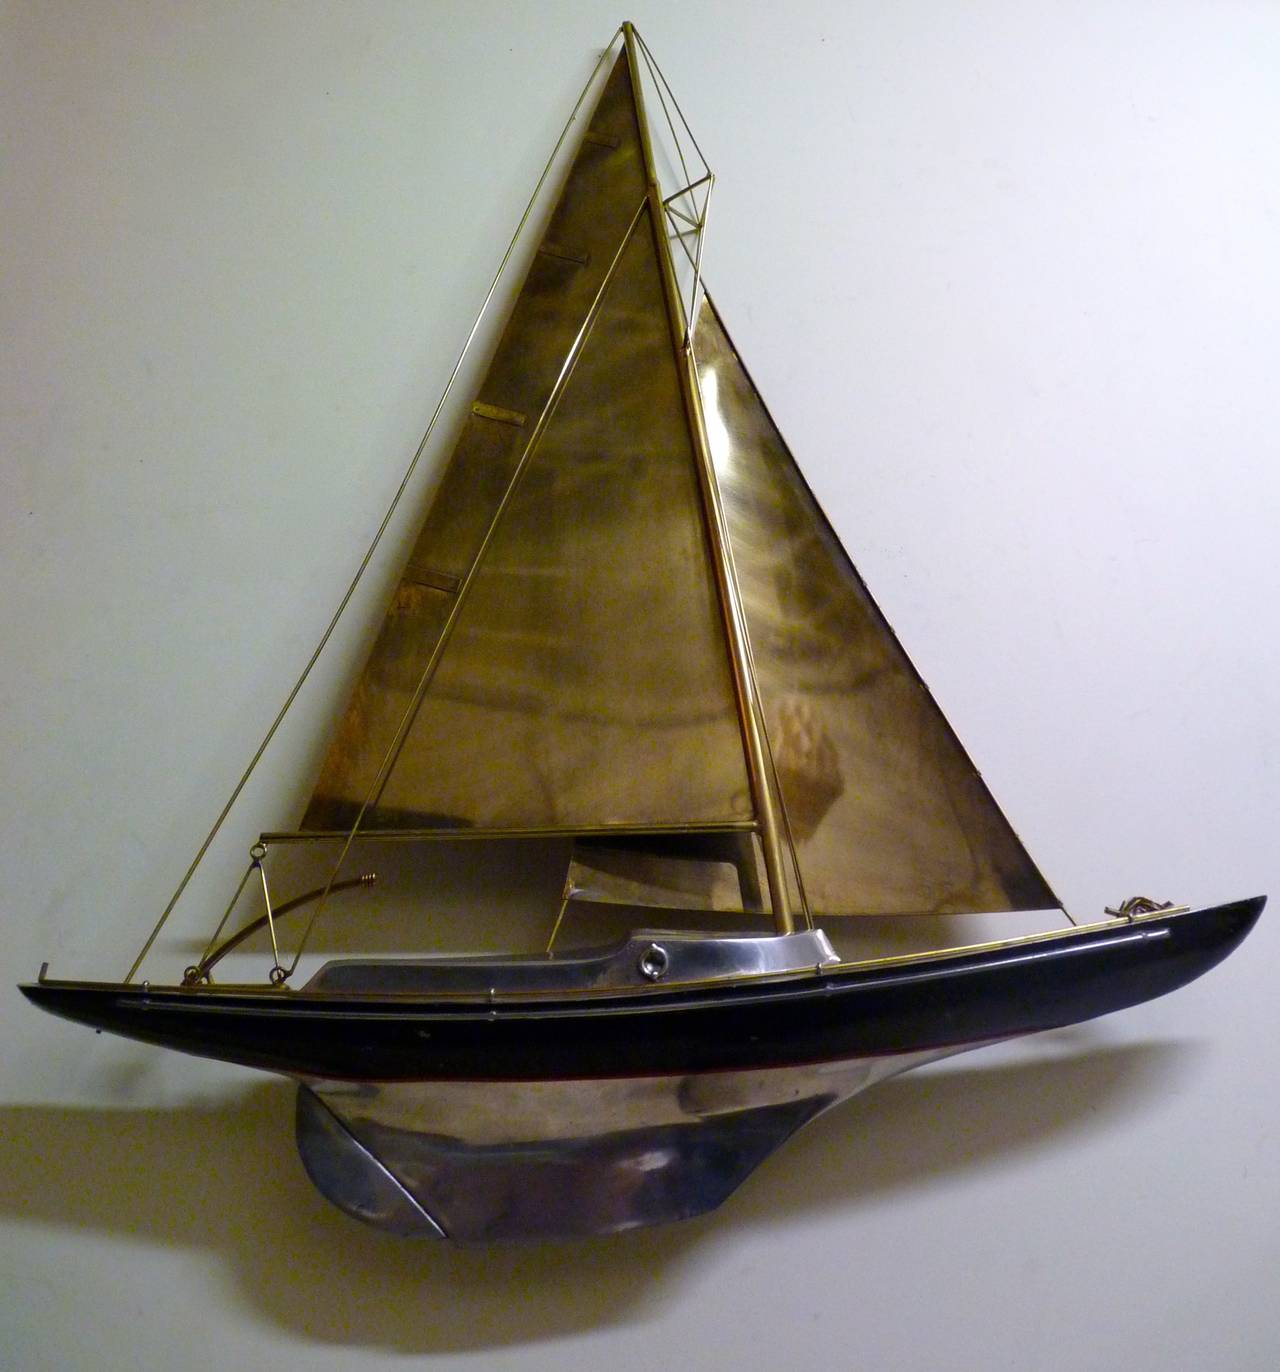 Sailboat wall sculpture by Curtis Jere in cast aluminum and patinated brass. This piece is signed as shown and dates to the 1980s. This particular Jere sculpture is likely the highest quality construction of any Jere sculpture that I have seen yet.